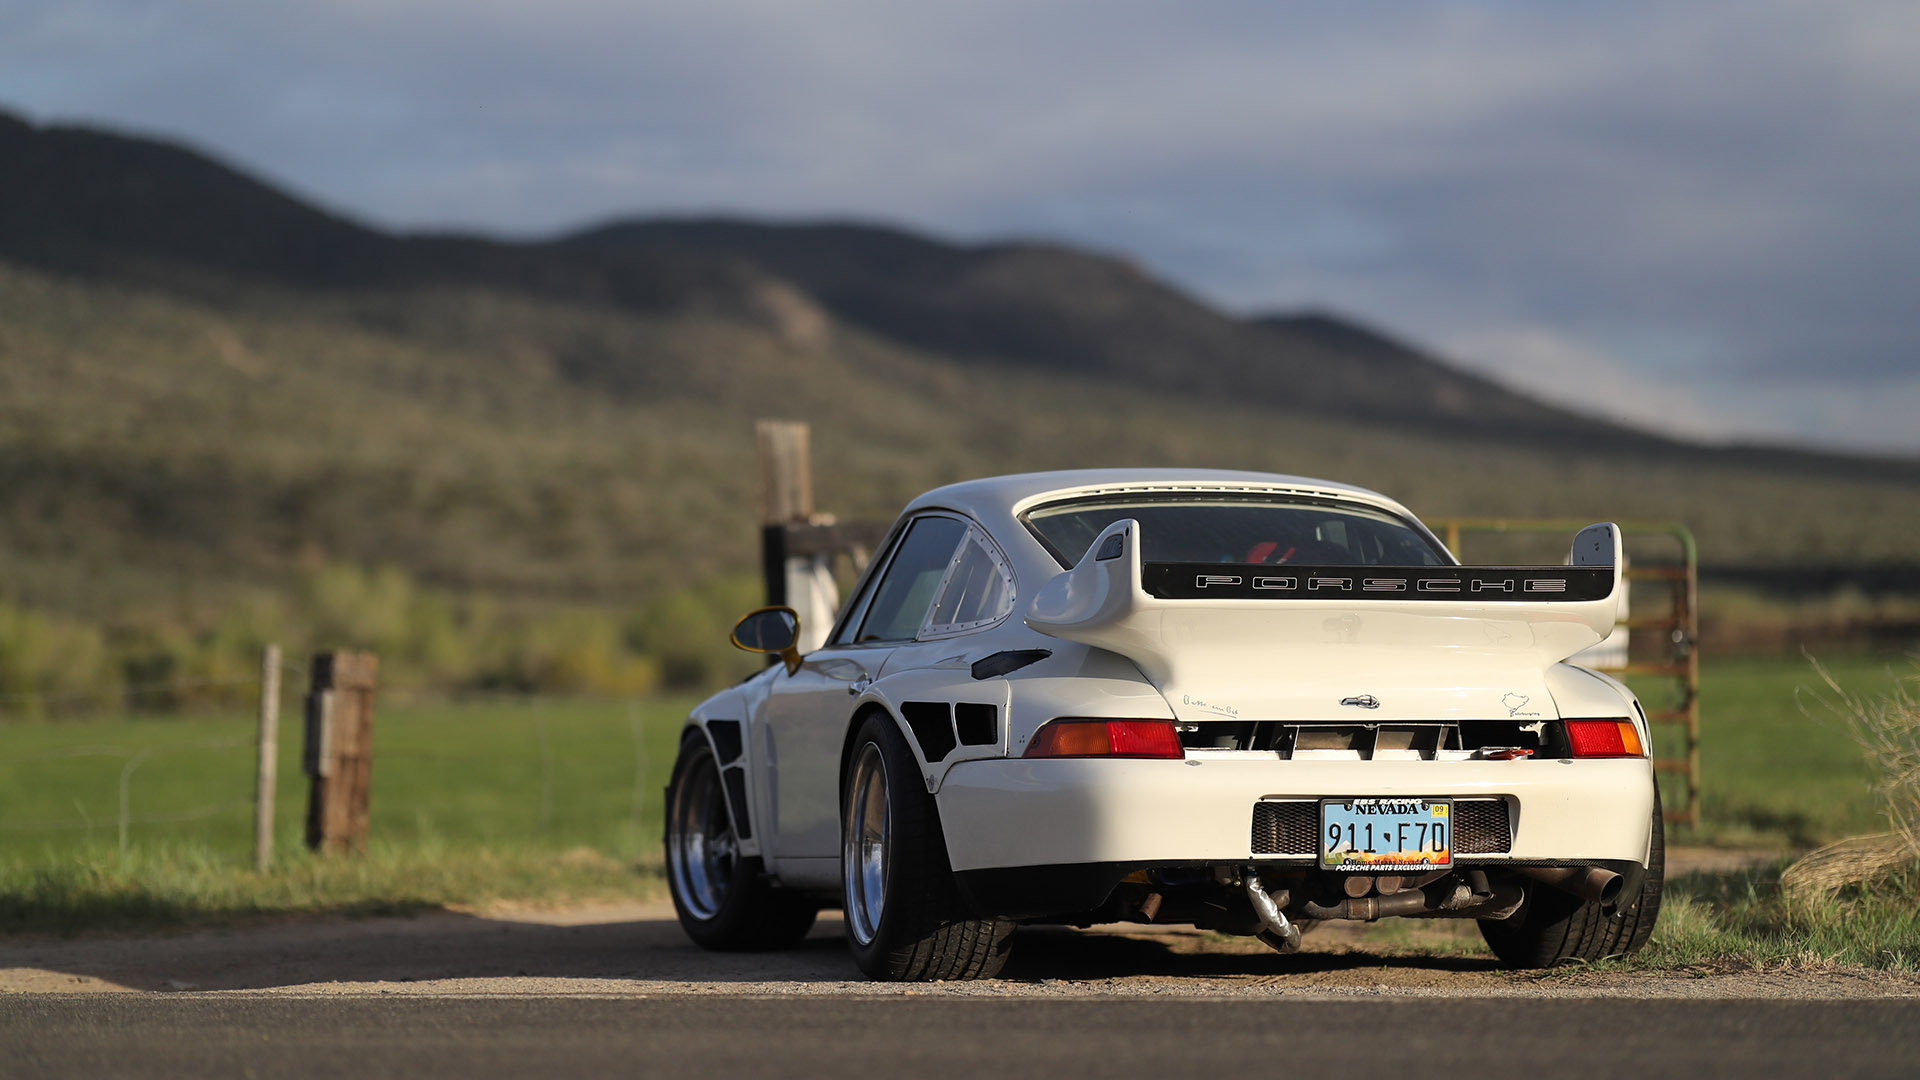 Evolving A 1974 Porsche 911 Into An 800HP Turbocharged Beast With 90s Looks